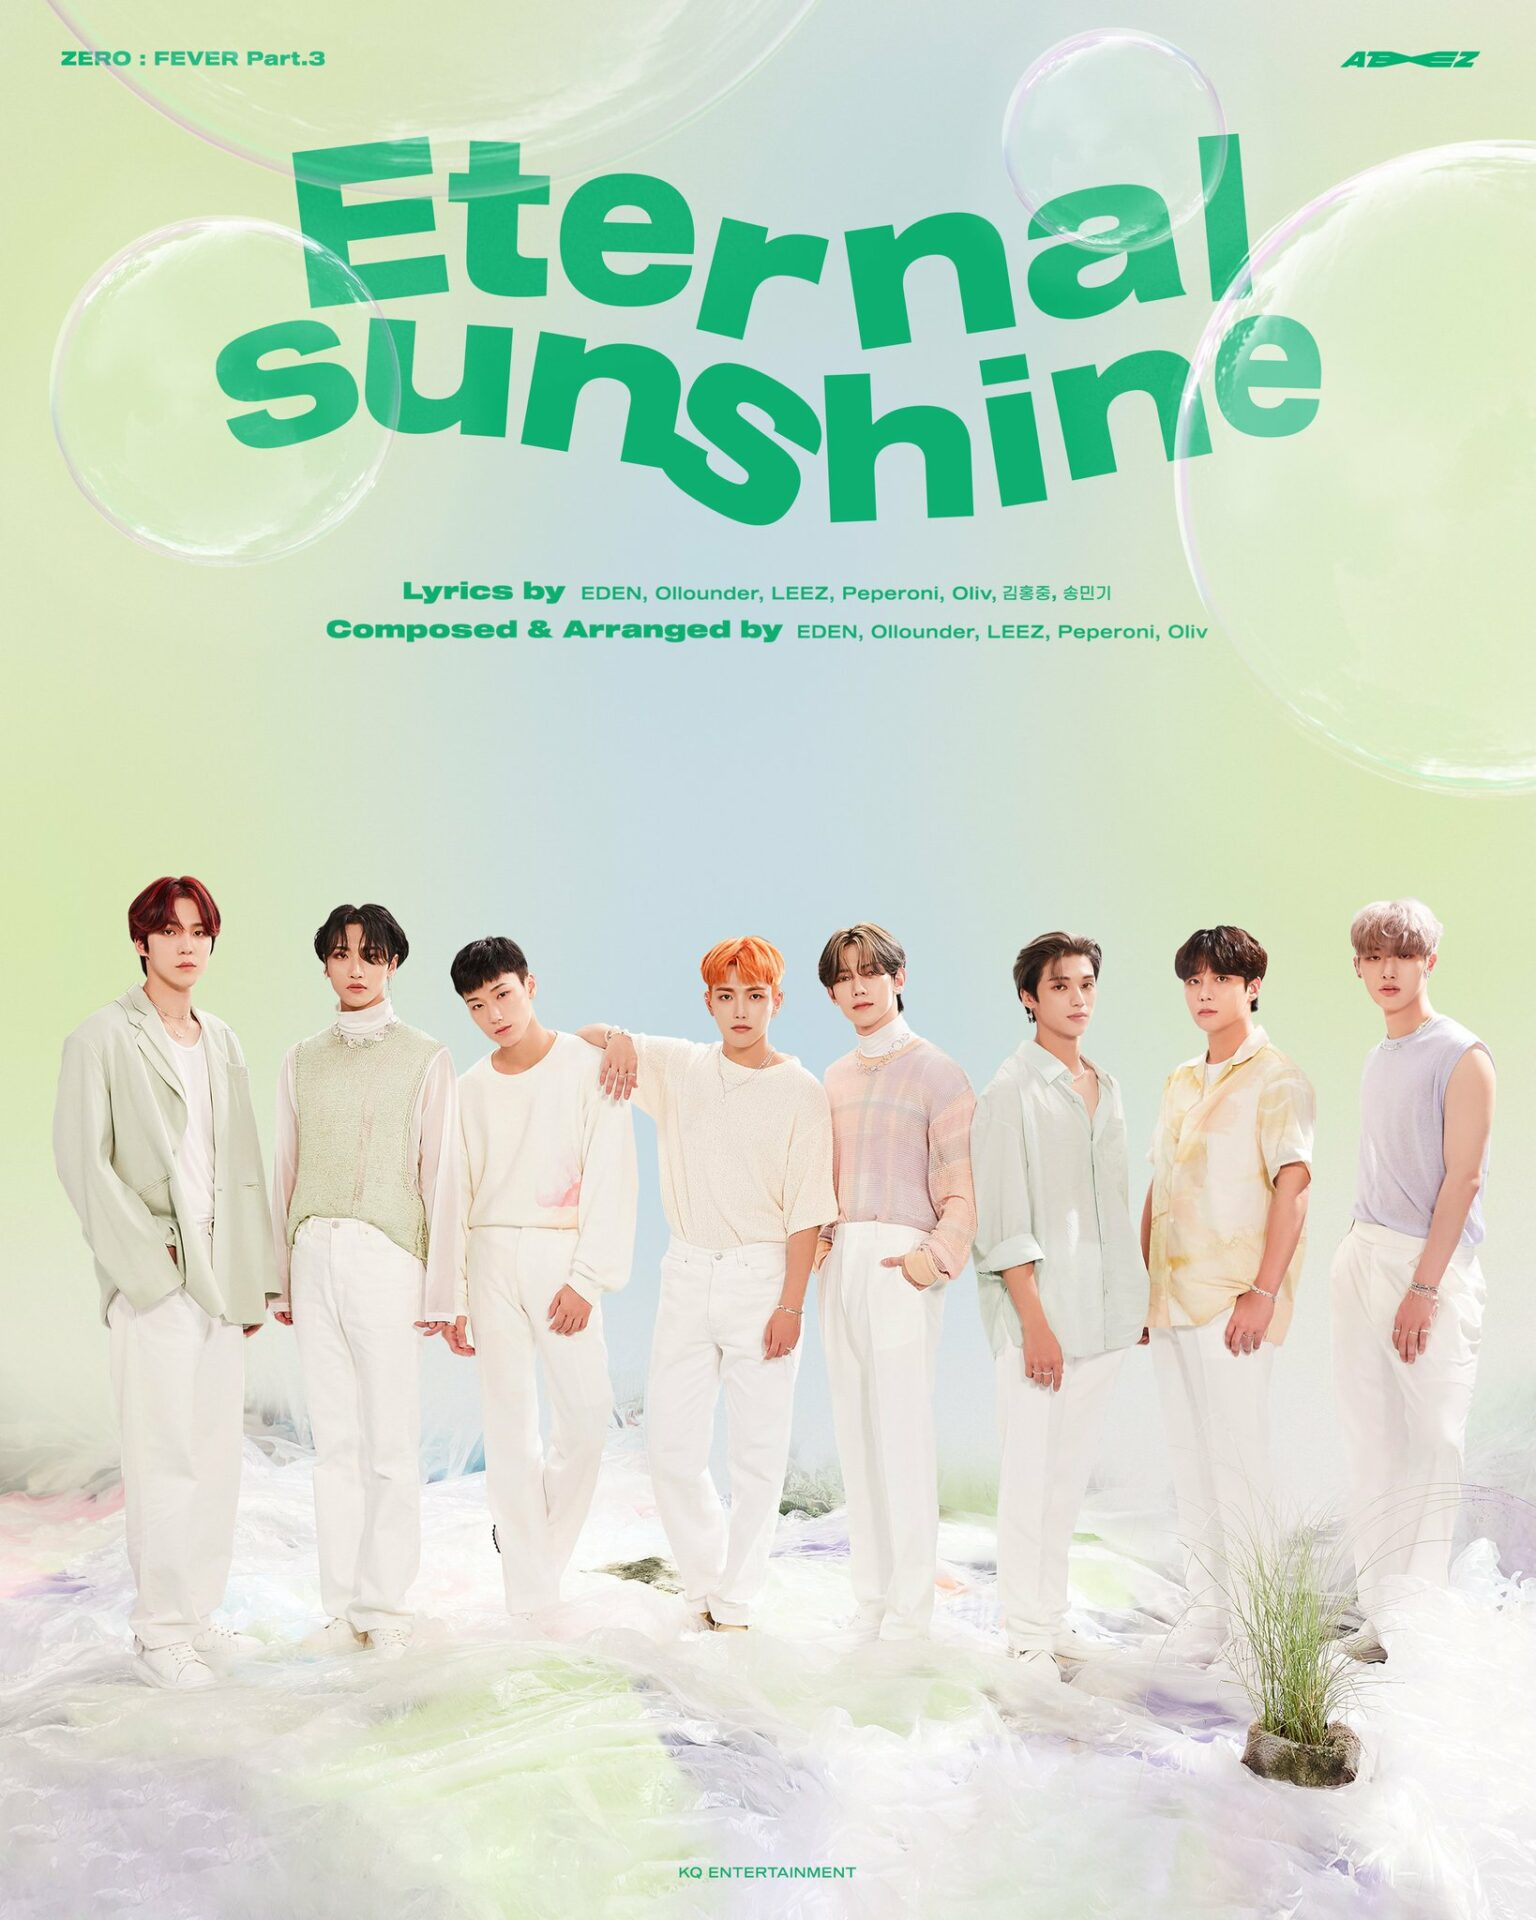 """This image is the cover of ATEEZ's single """"Eternal Sunshine"""". The 8 boys are all dressed in whites and pastel greens to match the background and the green title."""